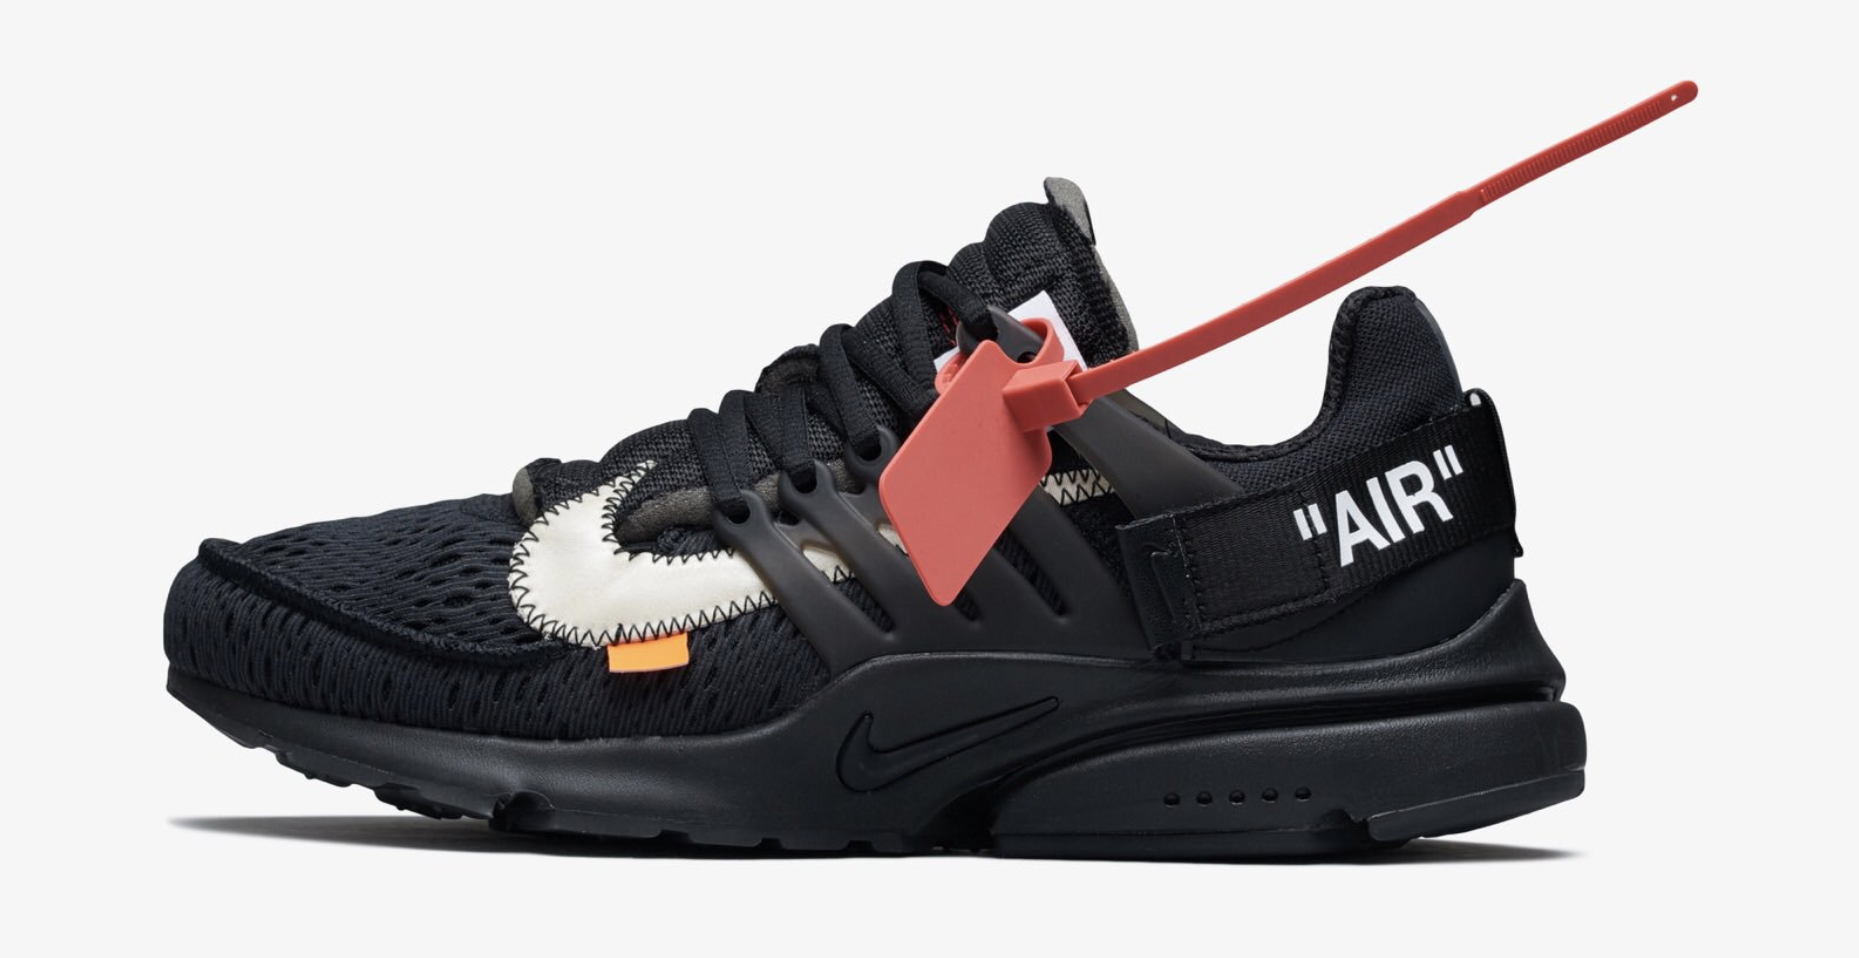 Off X ReleasedateEverysize White Air Presto Nike Blackamp; 80nPOkw